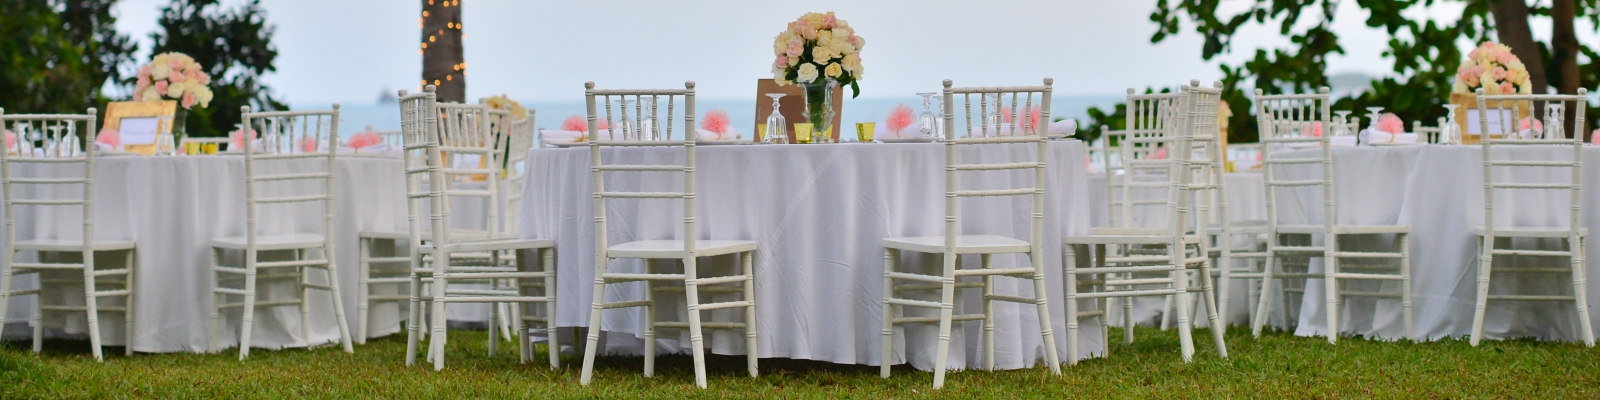 Tablecloth rentals in Palatine IL